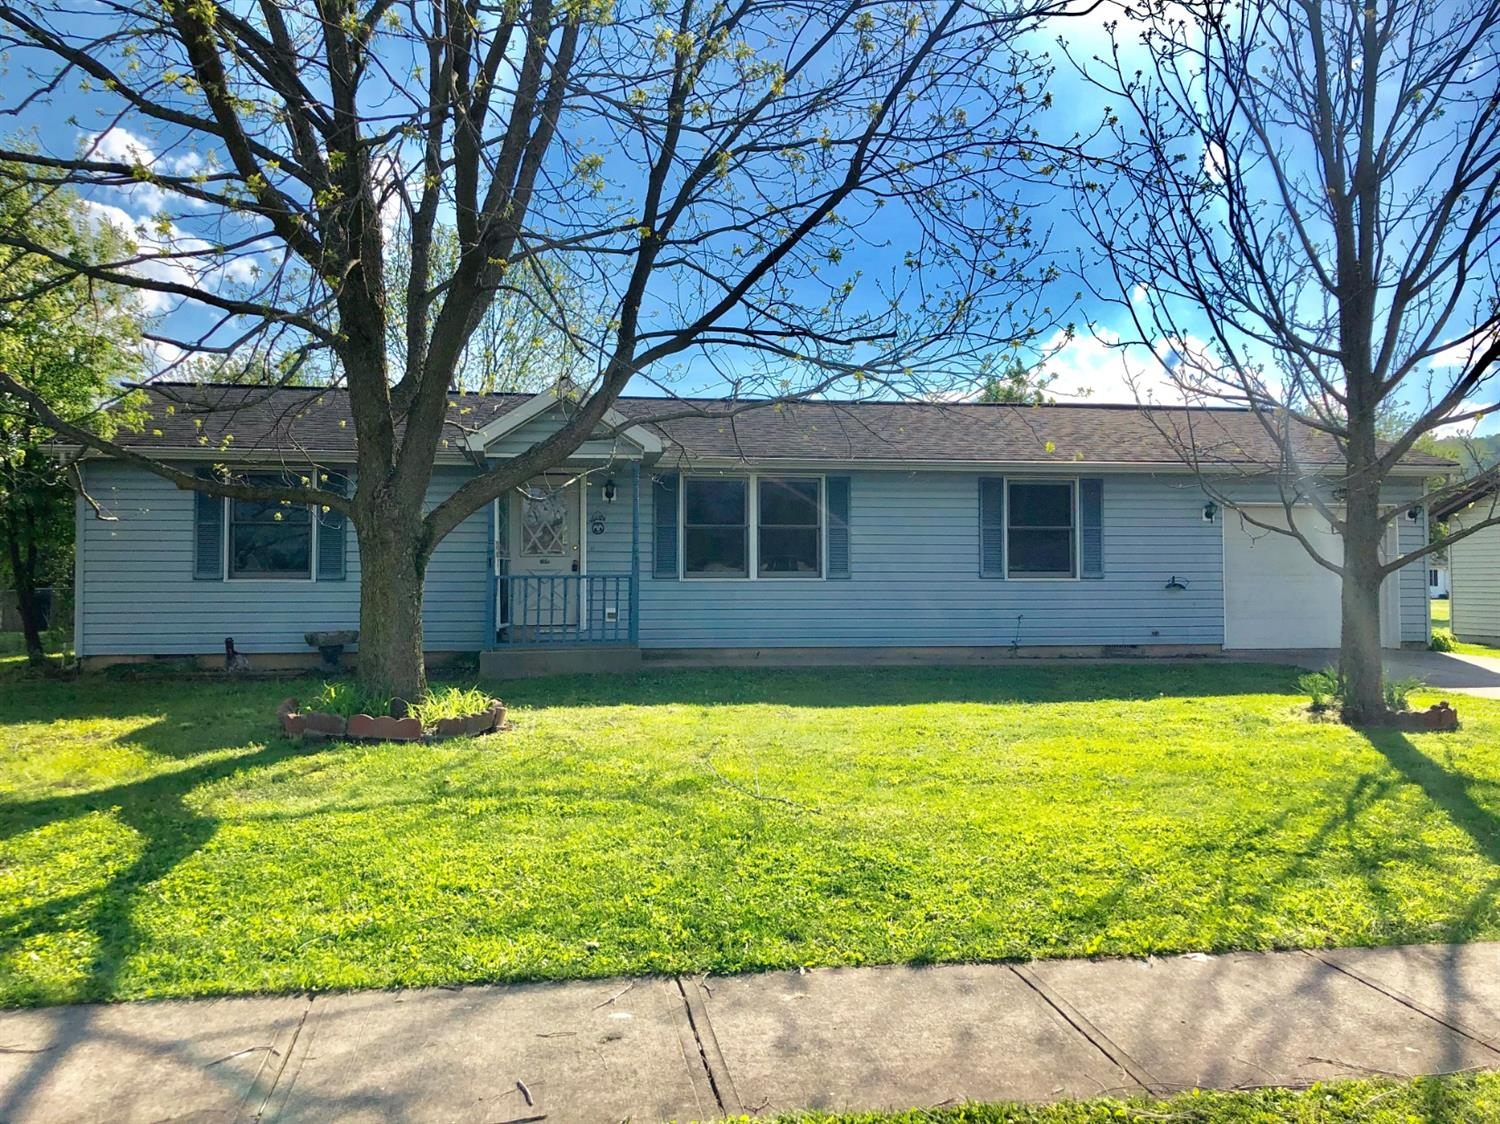 Photo 1 for 109 Maple St Vevay, IN 47043